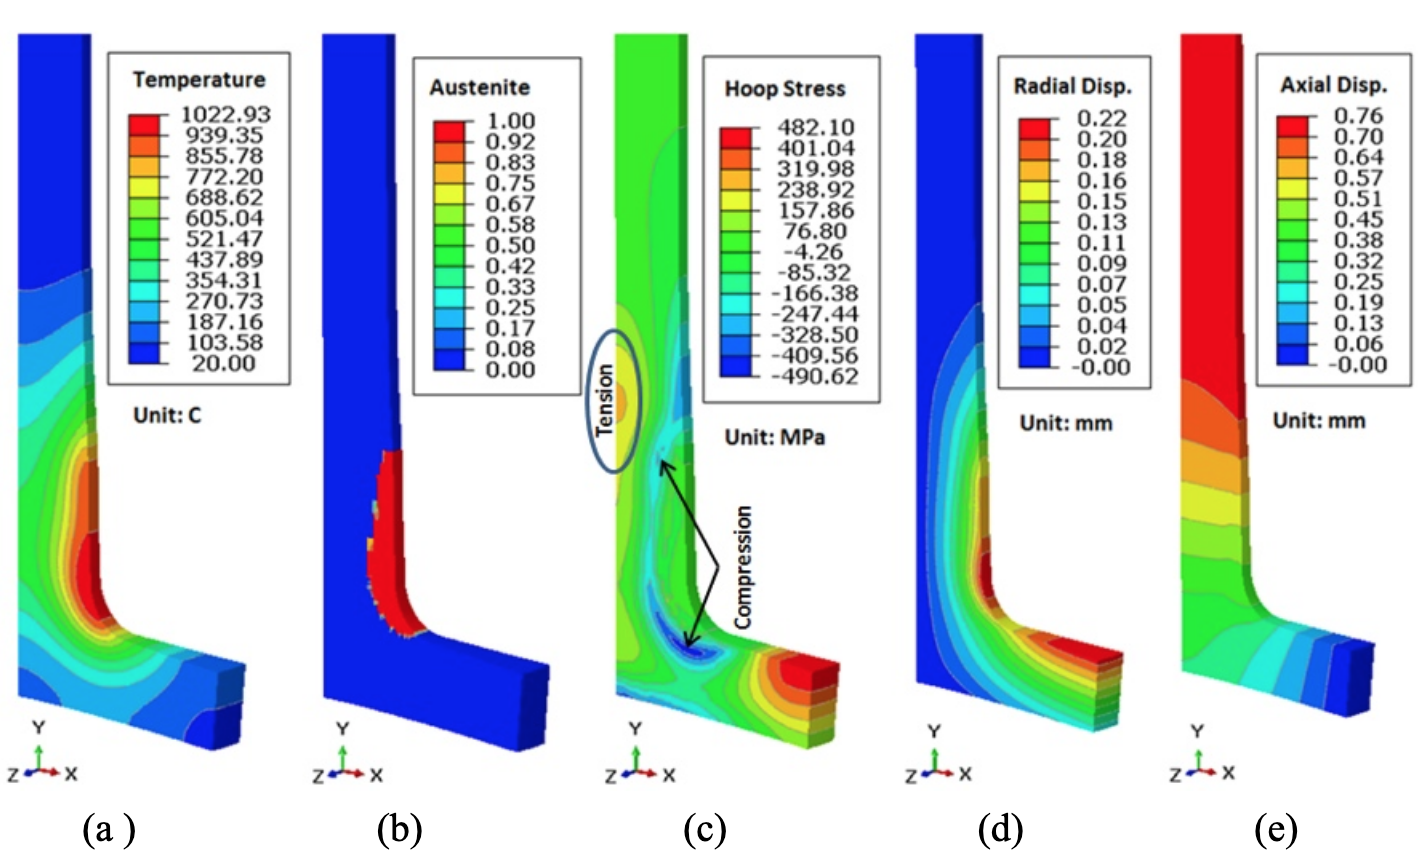 Fluxtrol - Modeling Stress and Distortion of Full-Float Truck Axle During Induction Hardening Process - Figure 4 (a) Temperature, (b) austenite phase, (c) hoop stress, (d) radial displacement, and (e) axial displacement distributions at the end of 9 second dwell.